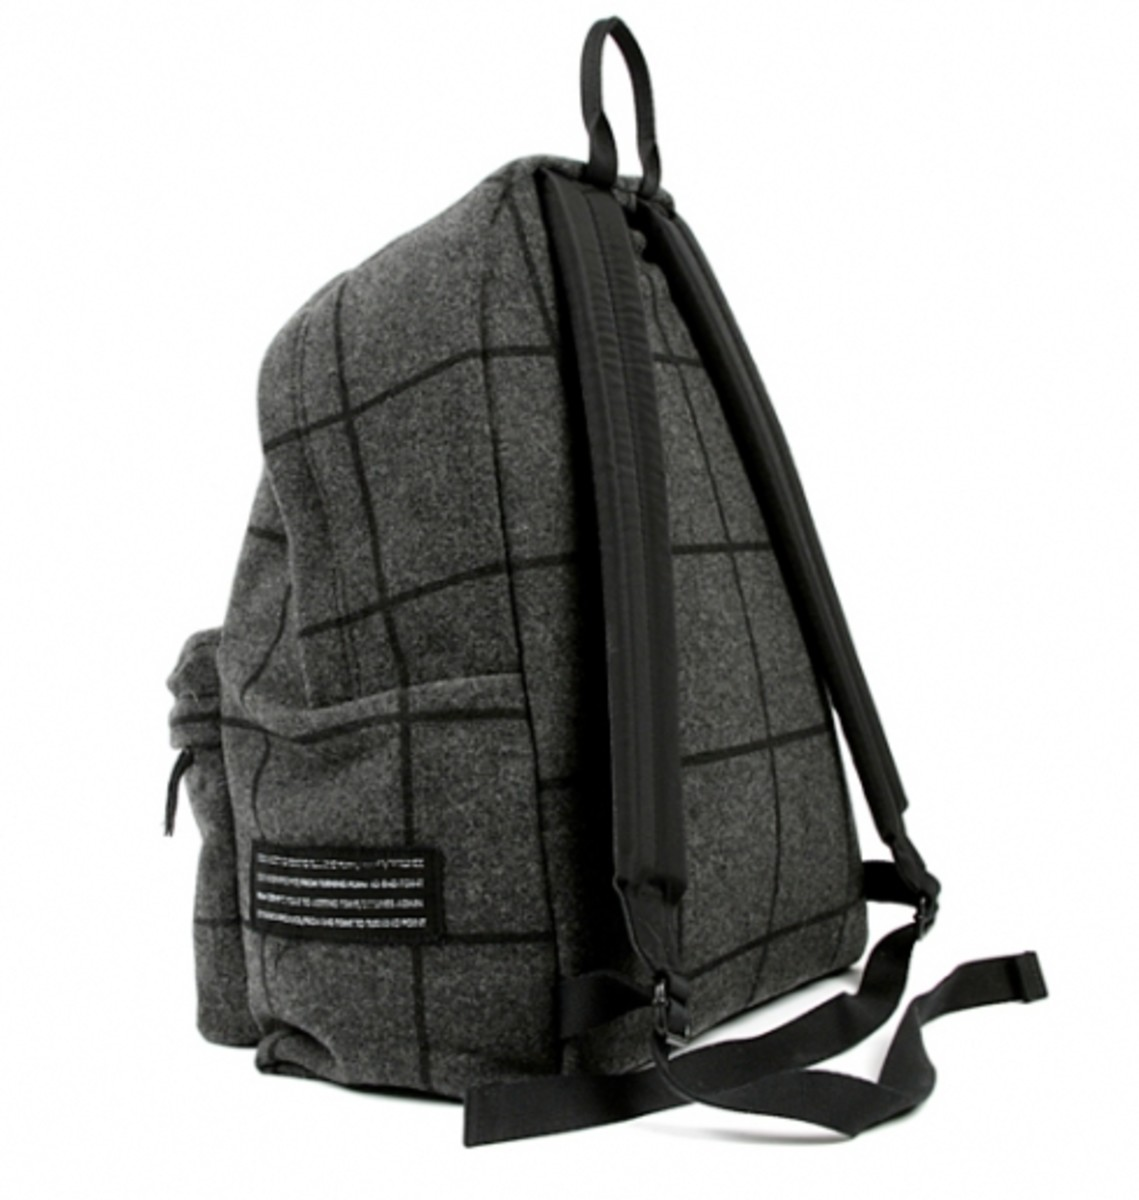 Raf Simons x EASTPAK - Backpack & Messenger Bag